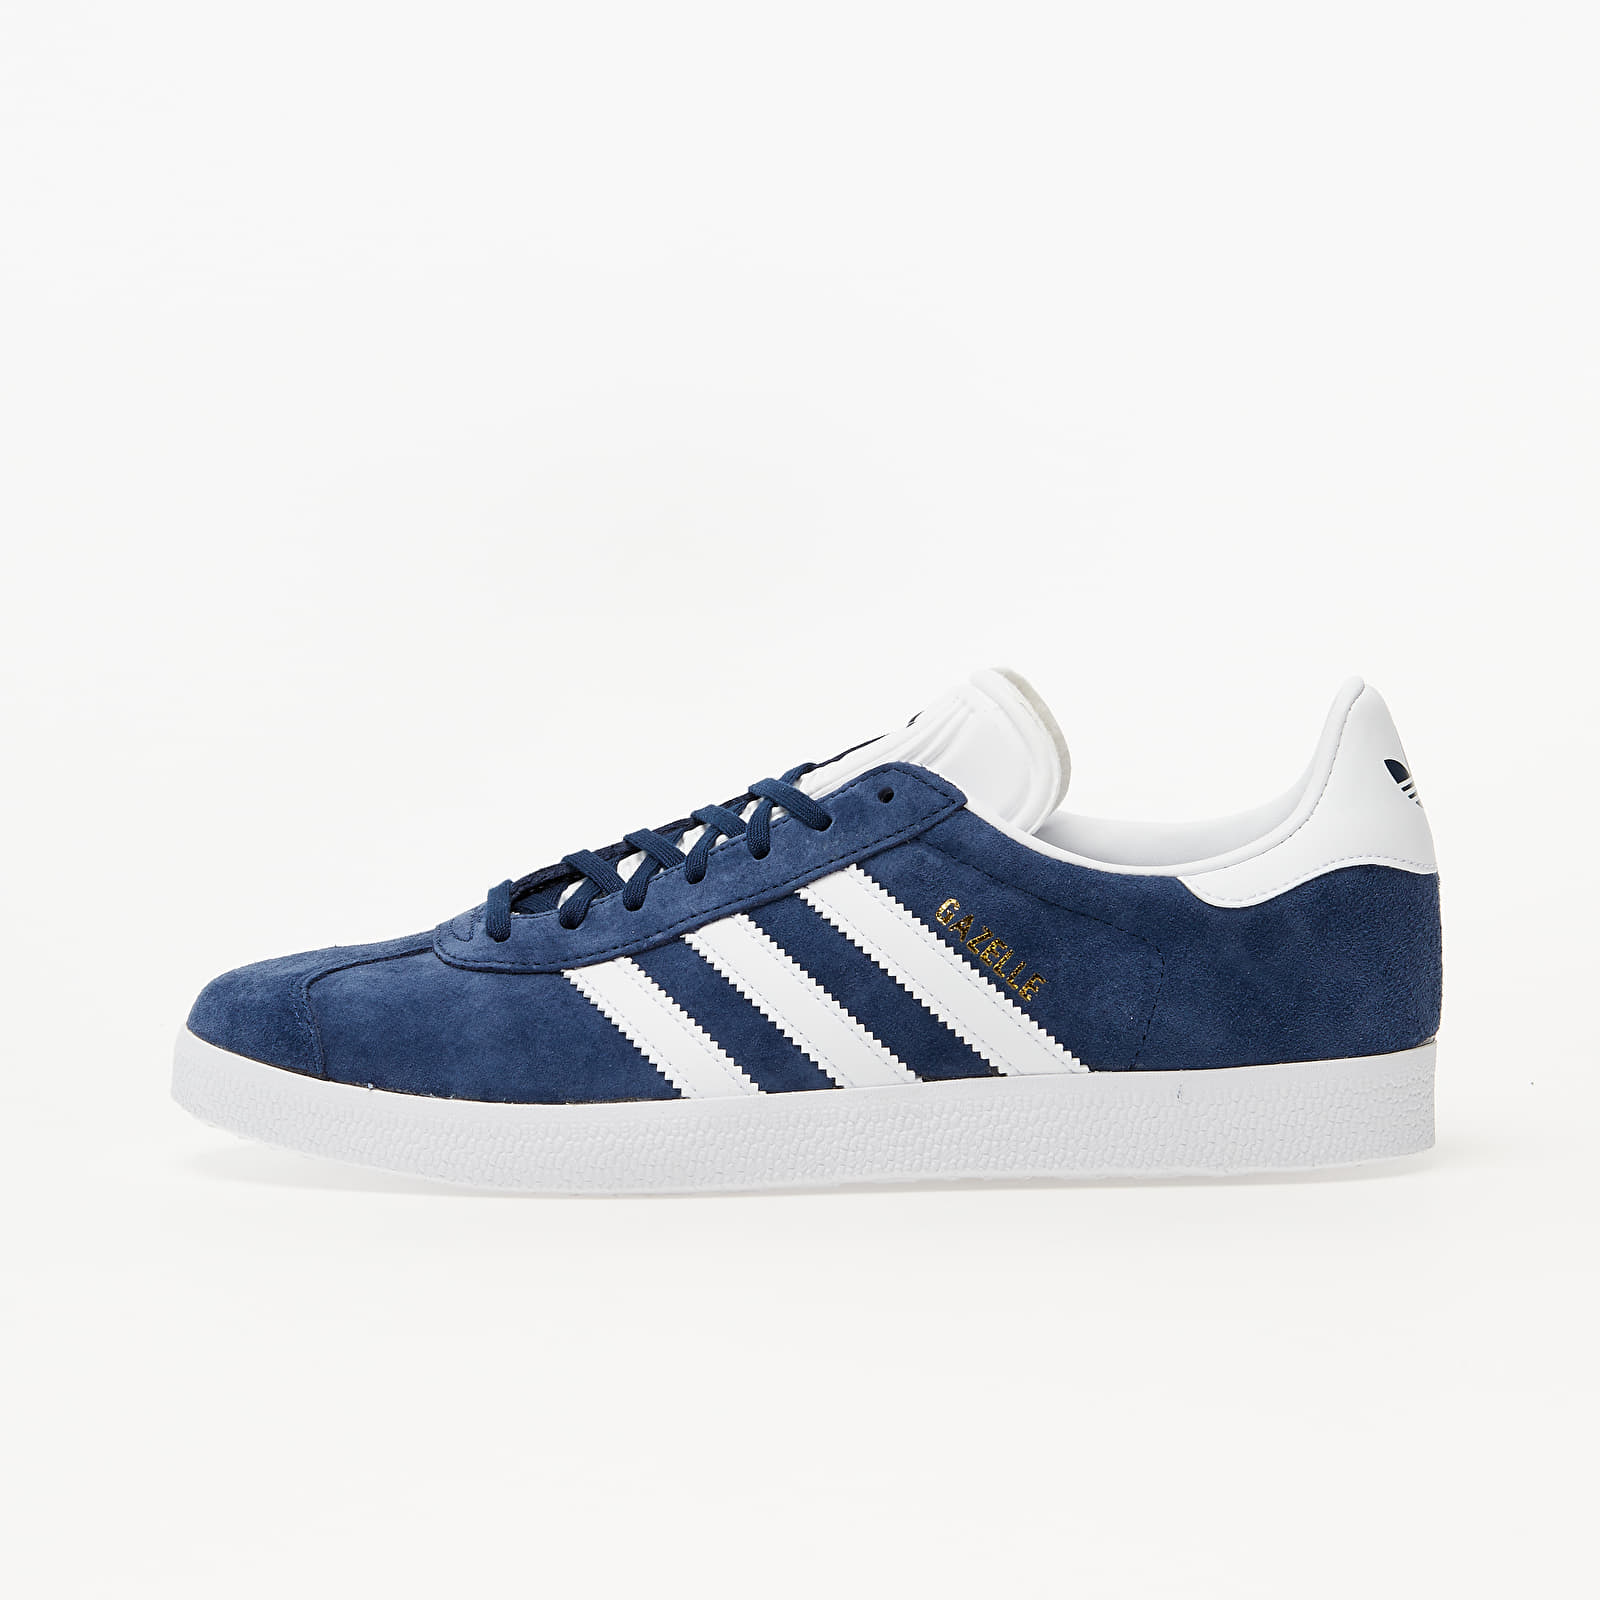 adidas Gazelle Core Navy/ White/ Gold Metalic EUR 40 2/3